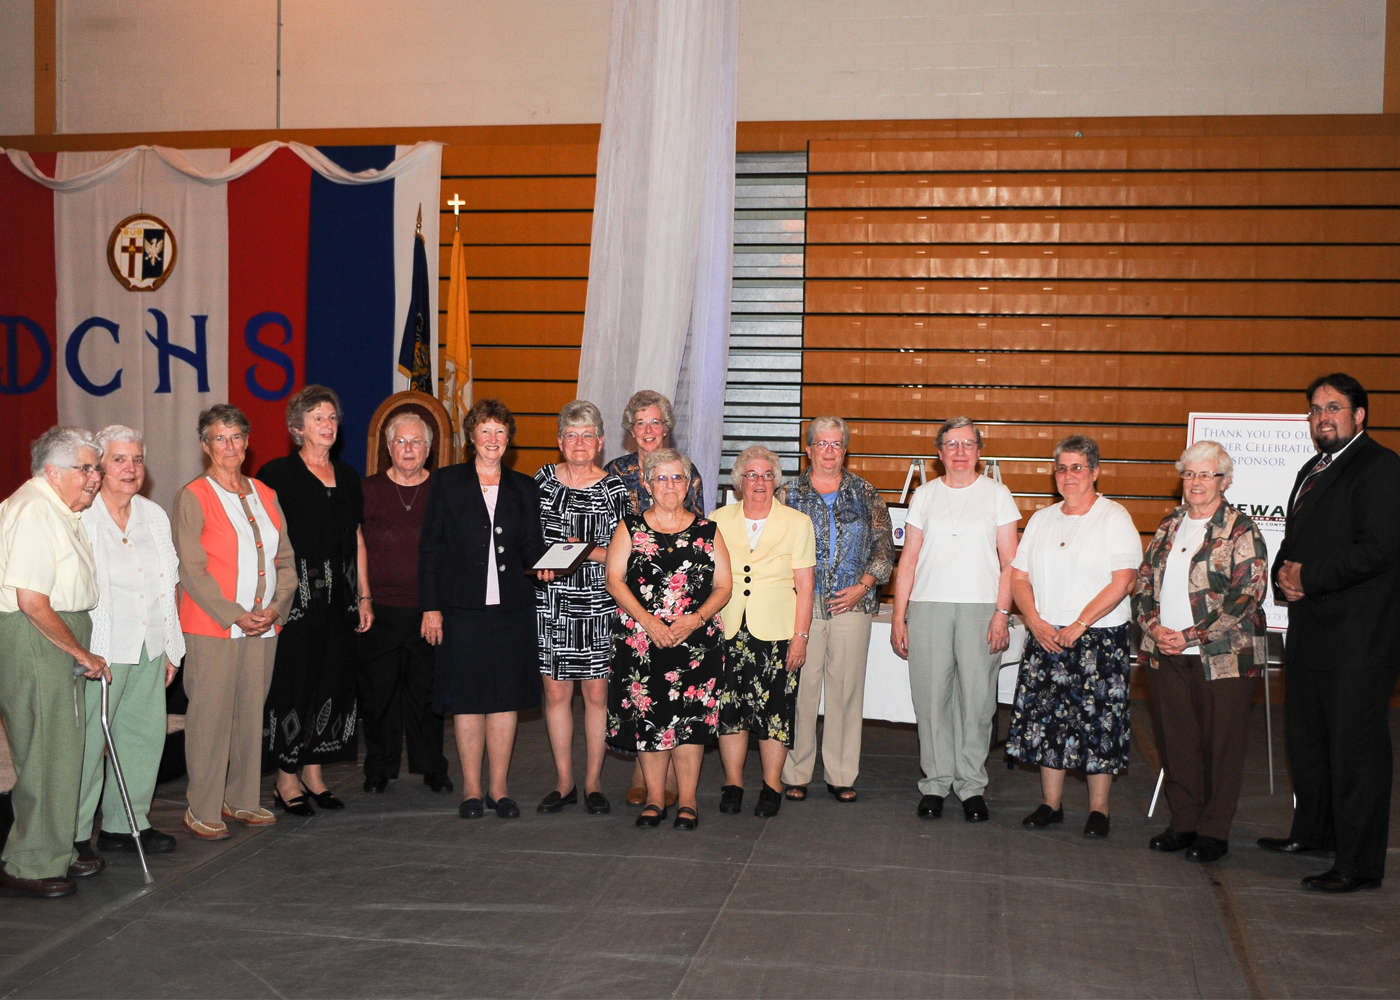 Sister Ann Myers, President of the Sisters of Saint Joseph of Chestnut Hill, Pa., and numerous alumni and former faculty and staff members accept induction on behalf of their congregation.